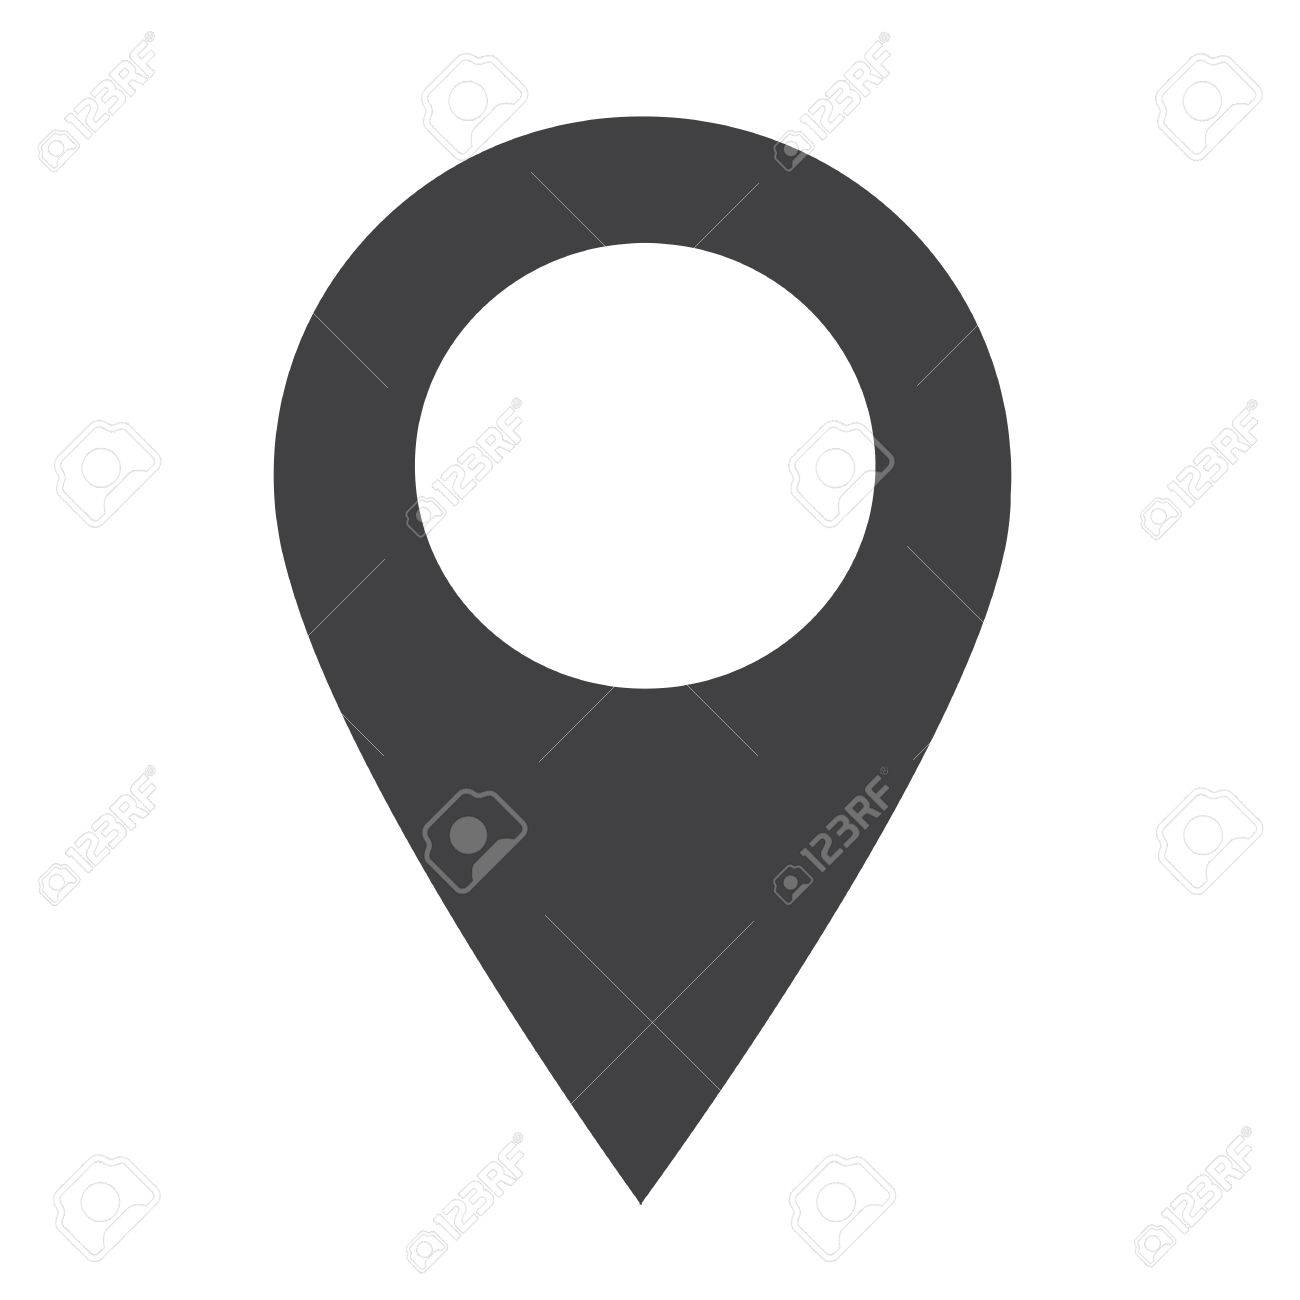 1300x1300 Gps Location Map Pointer Icon Royalty Free Cliparts, Vectors,